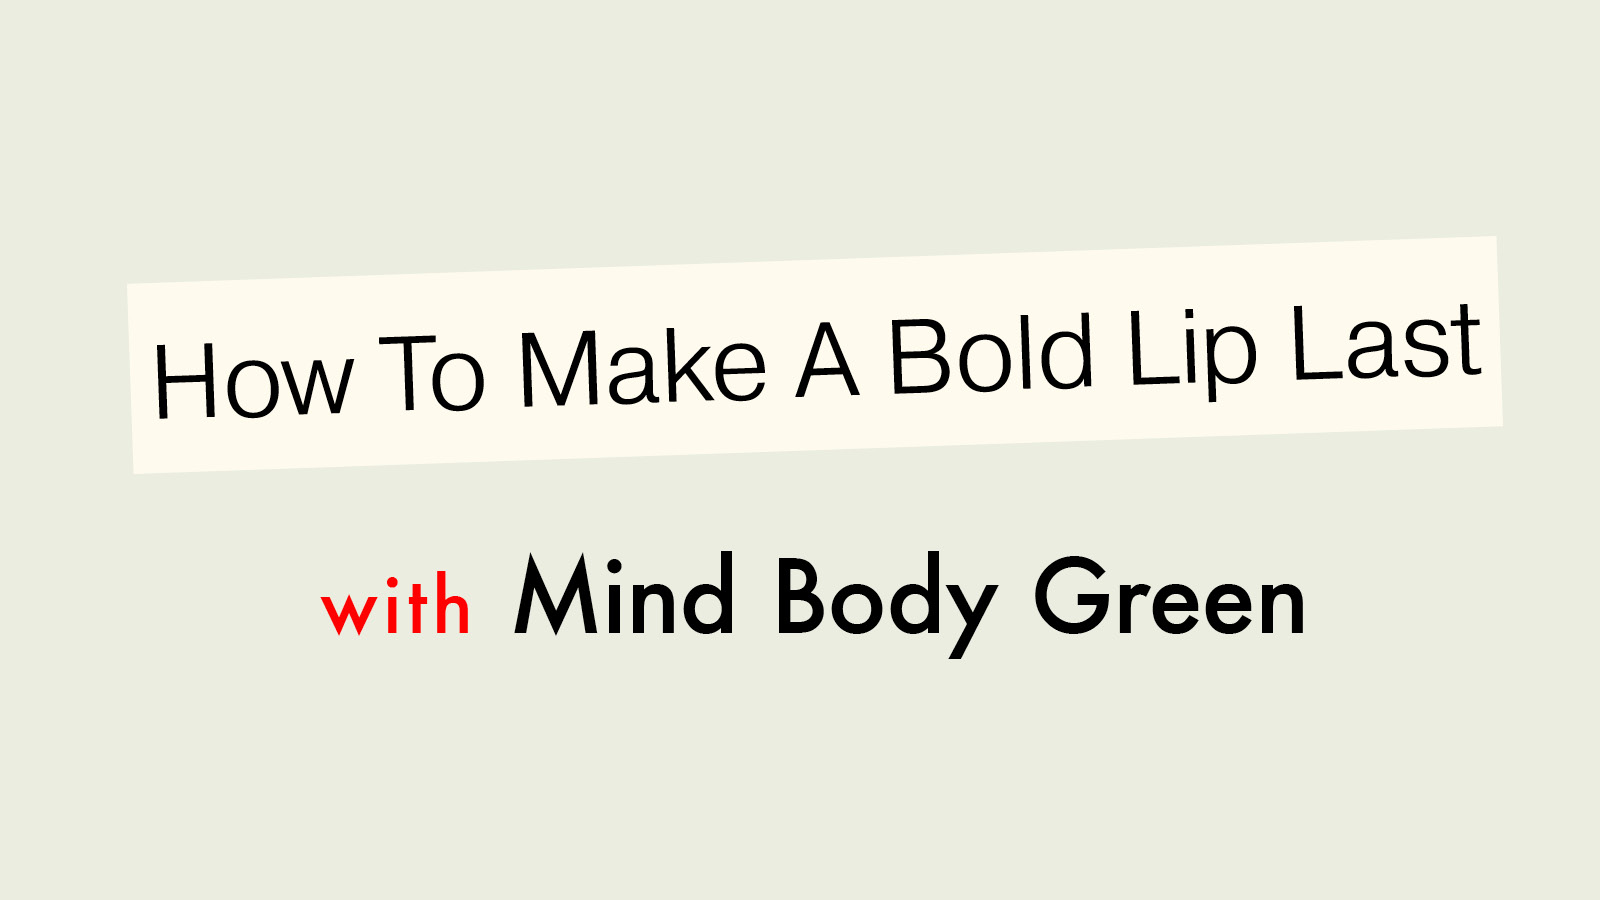 How To Make A Bold Lip Last — Even When You're Wearing Naturals